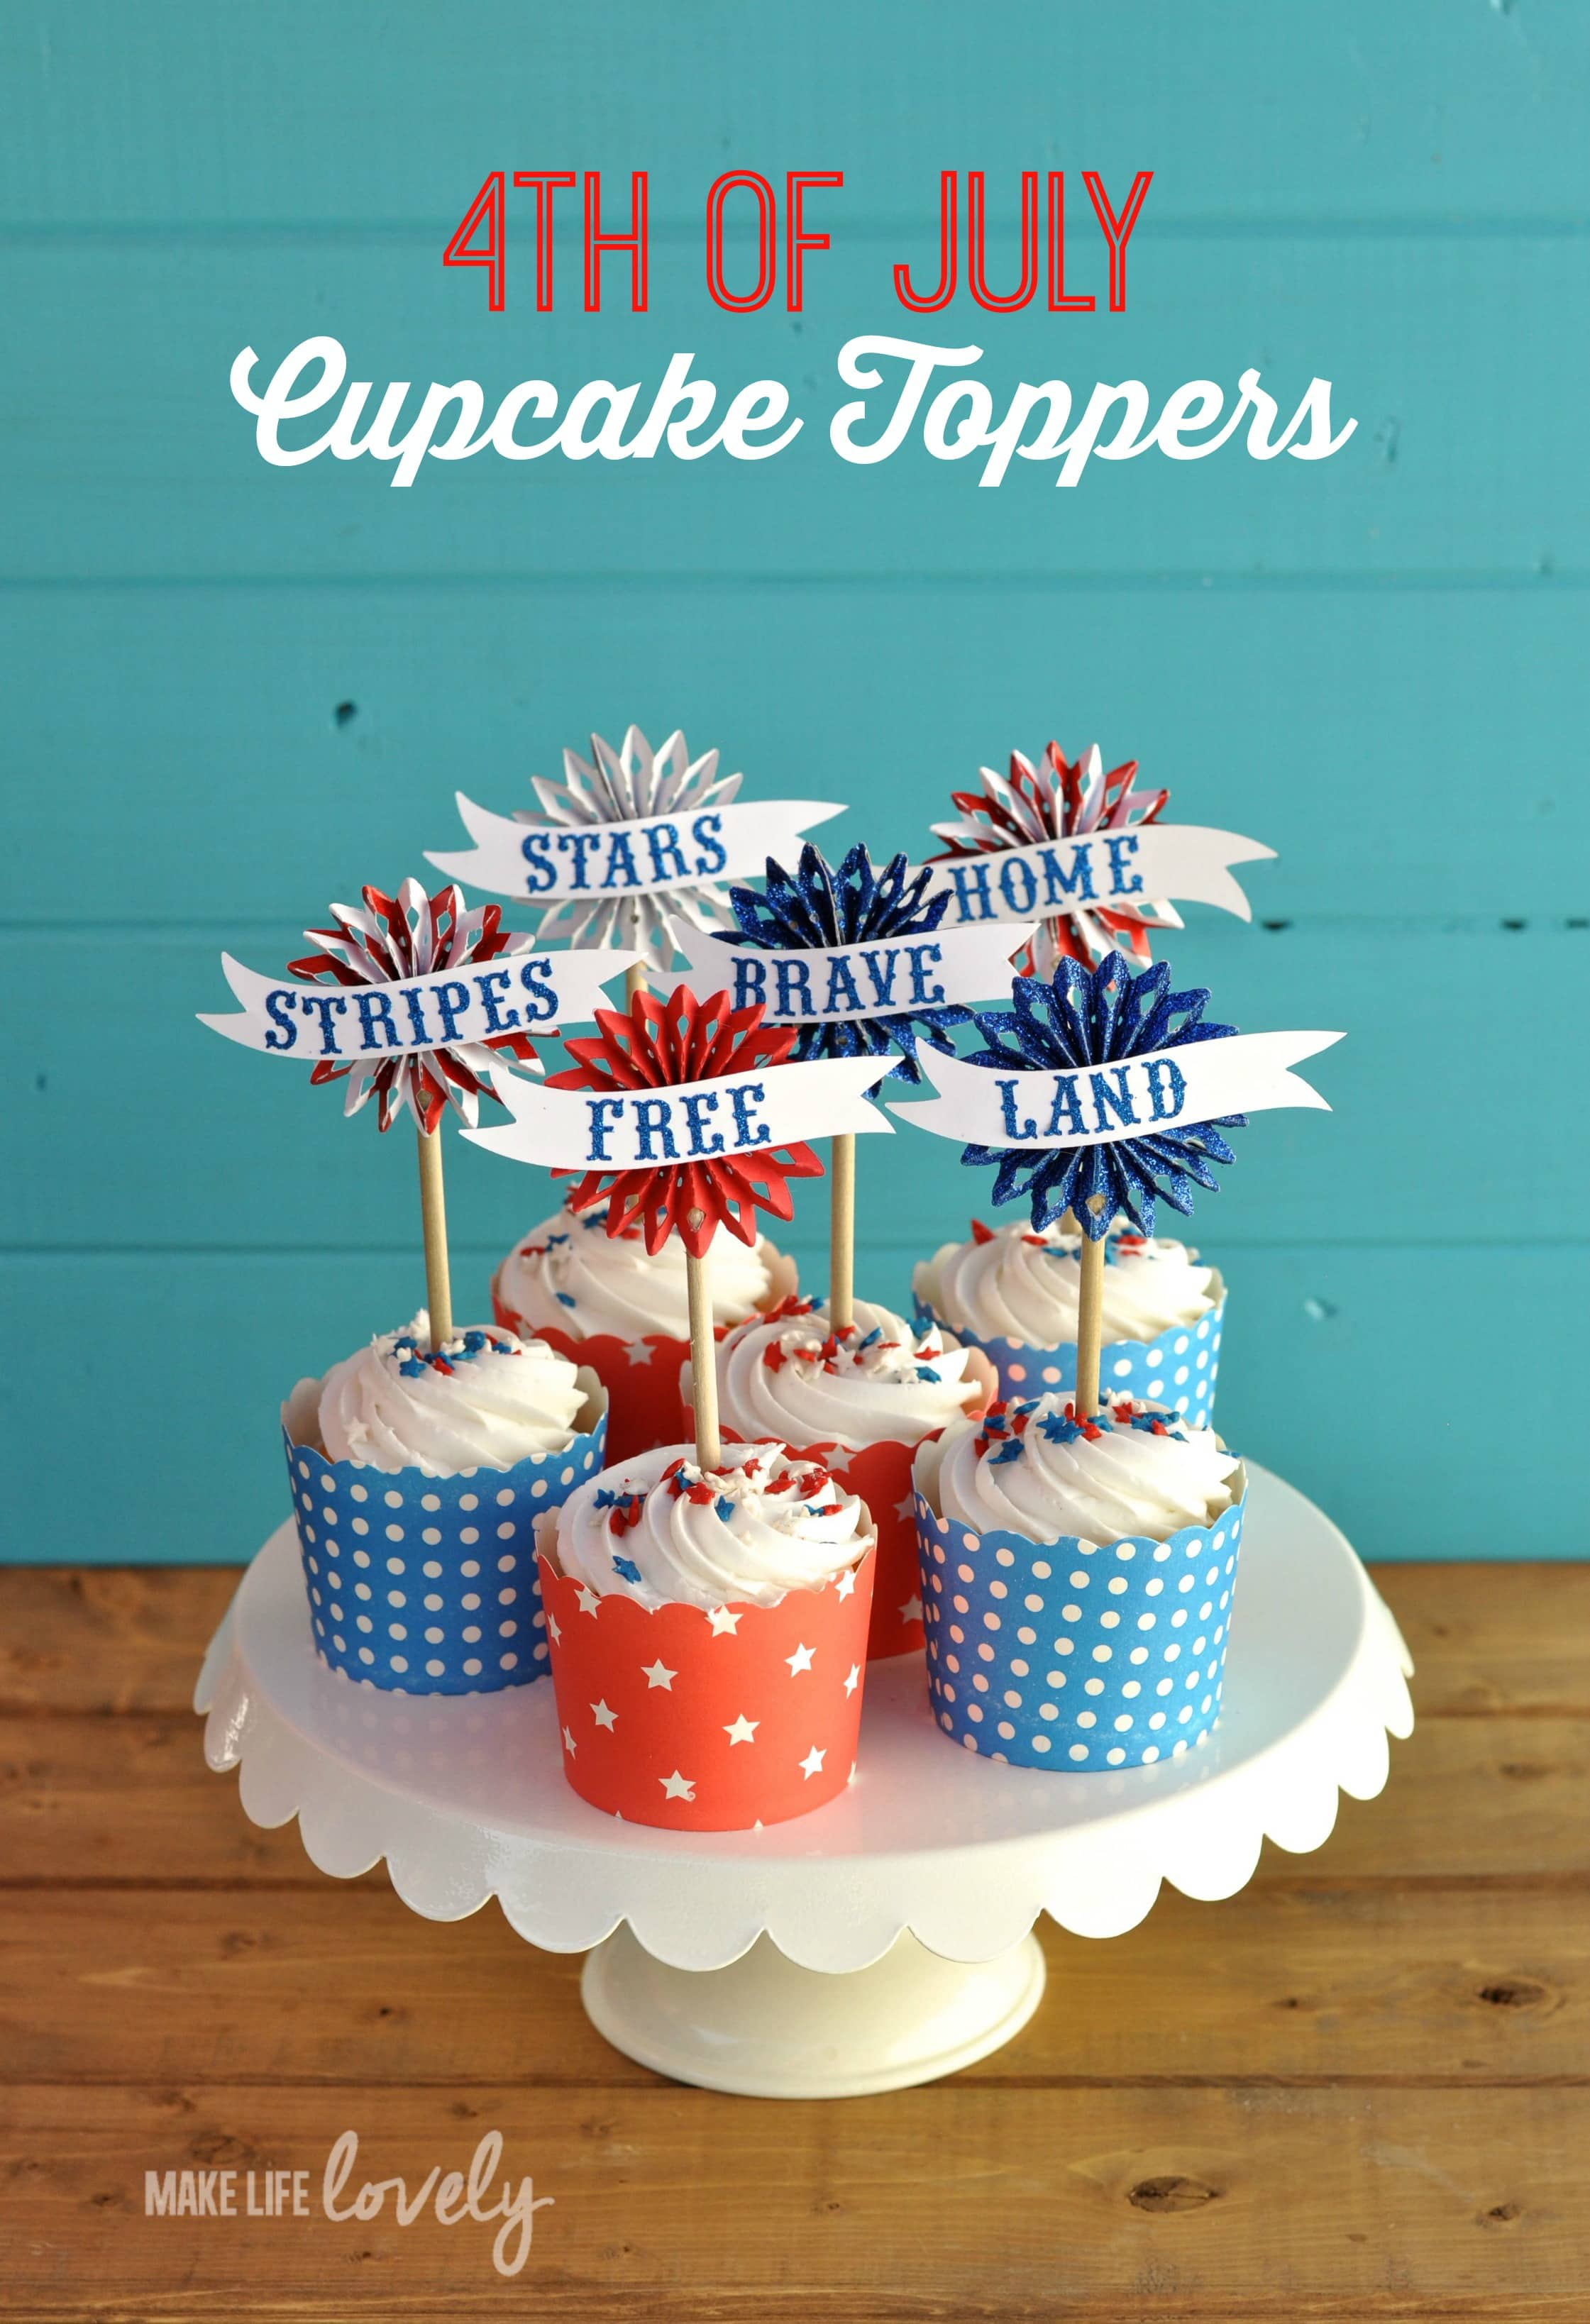 4th of July Cupcake Toppers - Make Life Lovely